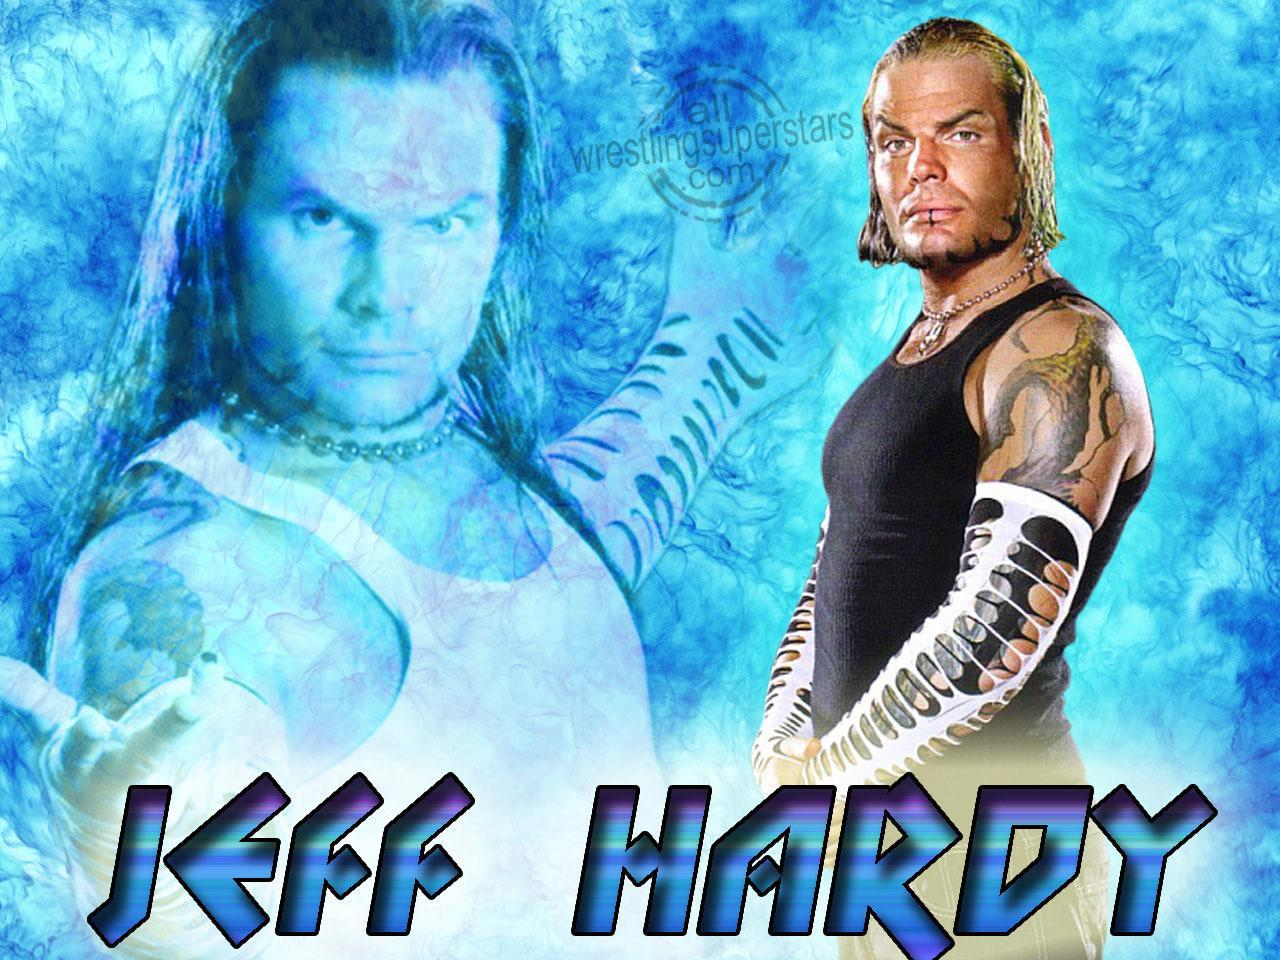 jeff hardy backgrounds wallpaper cave